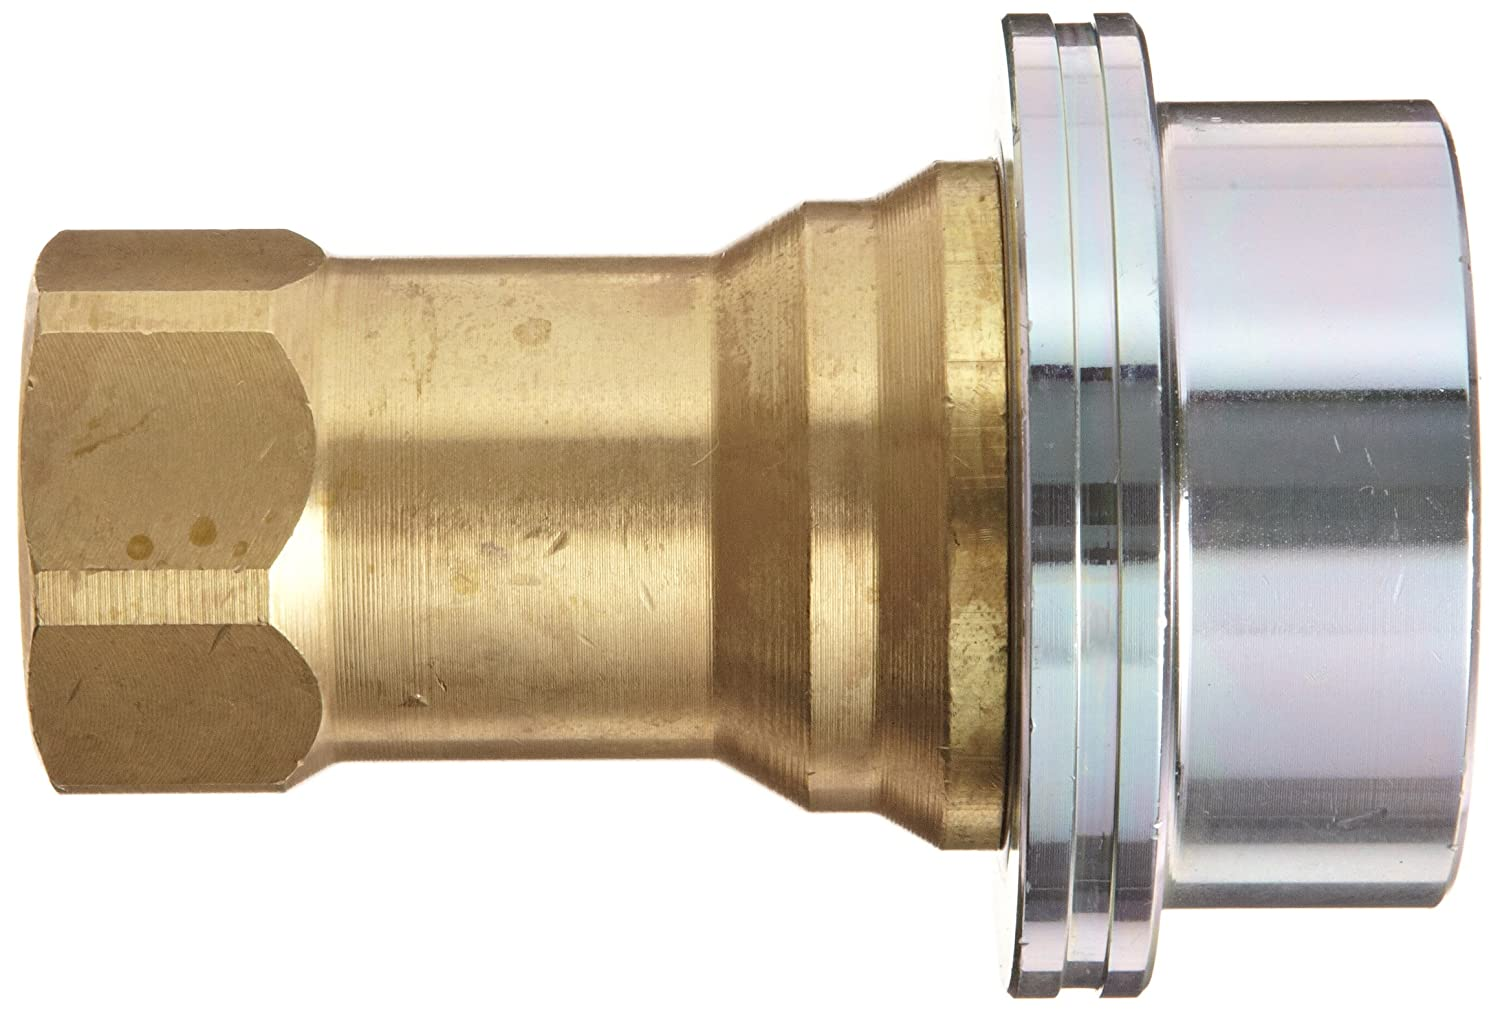 Dixon B16-400S Solid Brass Steam Quick Disconnect Boss Fitting Poppet Valve Coupler 1//2 Coupling x 1//2 NPT Female